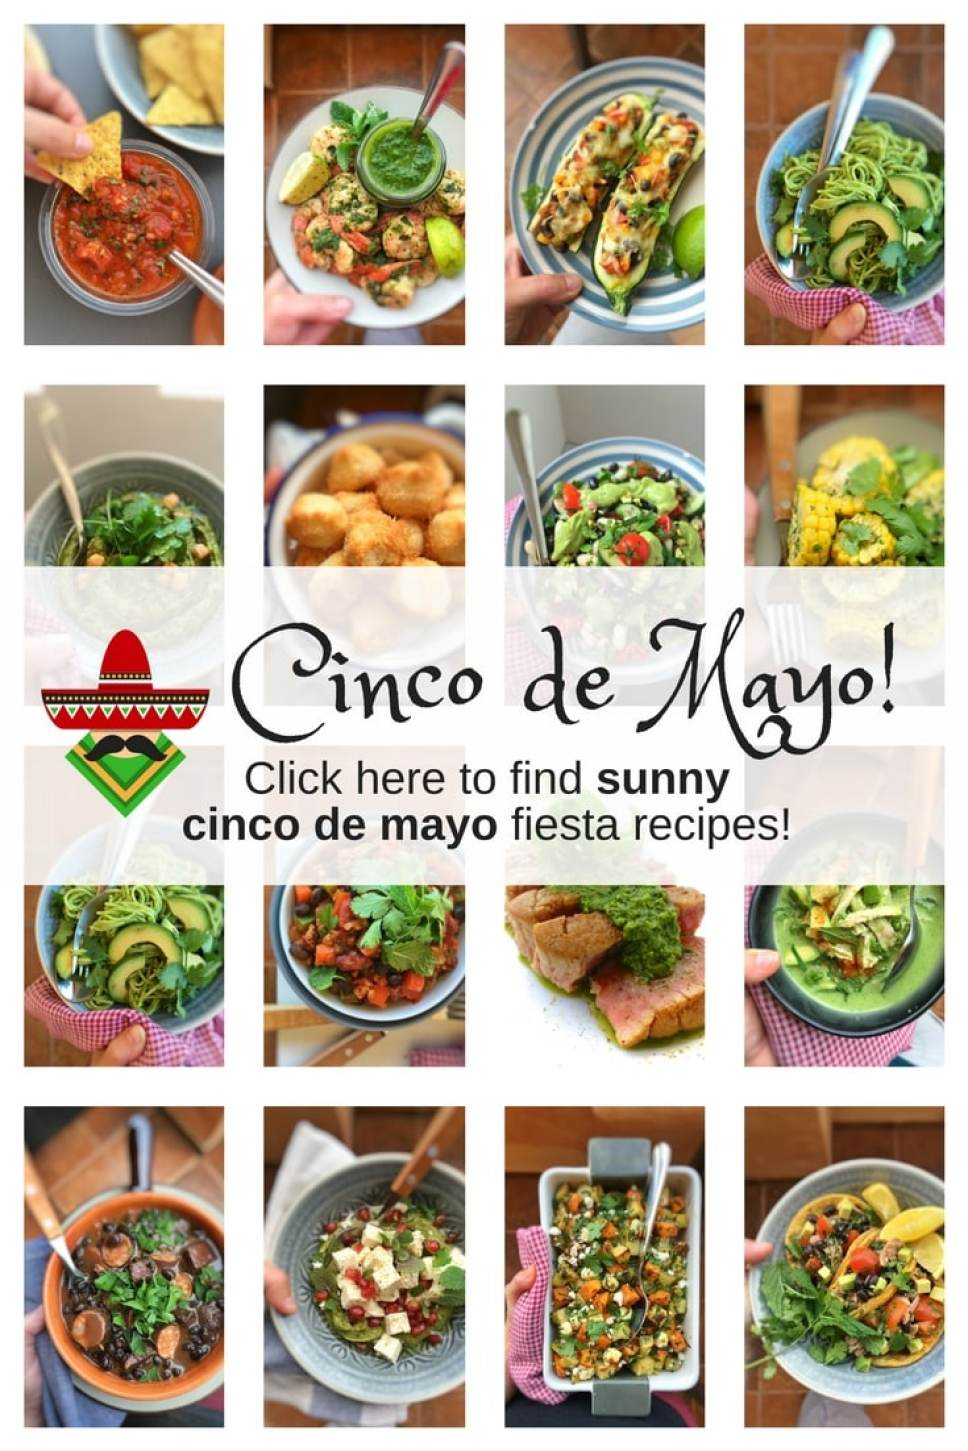 My Cinco de Mayo recipes! All about Mexican food, recipe and popular dishes and what Cinco de Mayo is all about. Happy Fiesta!